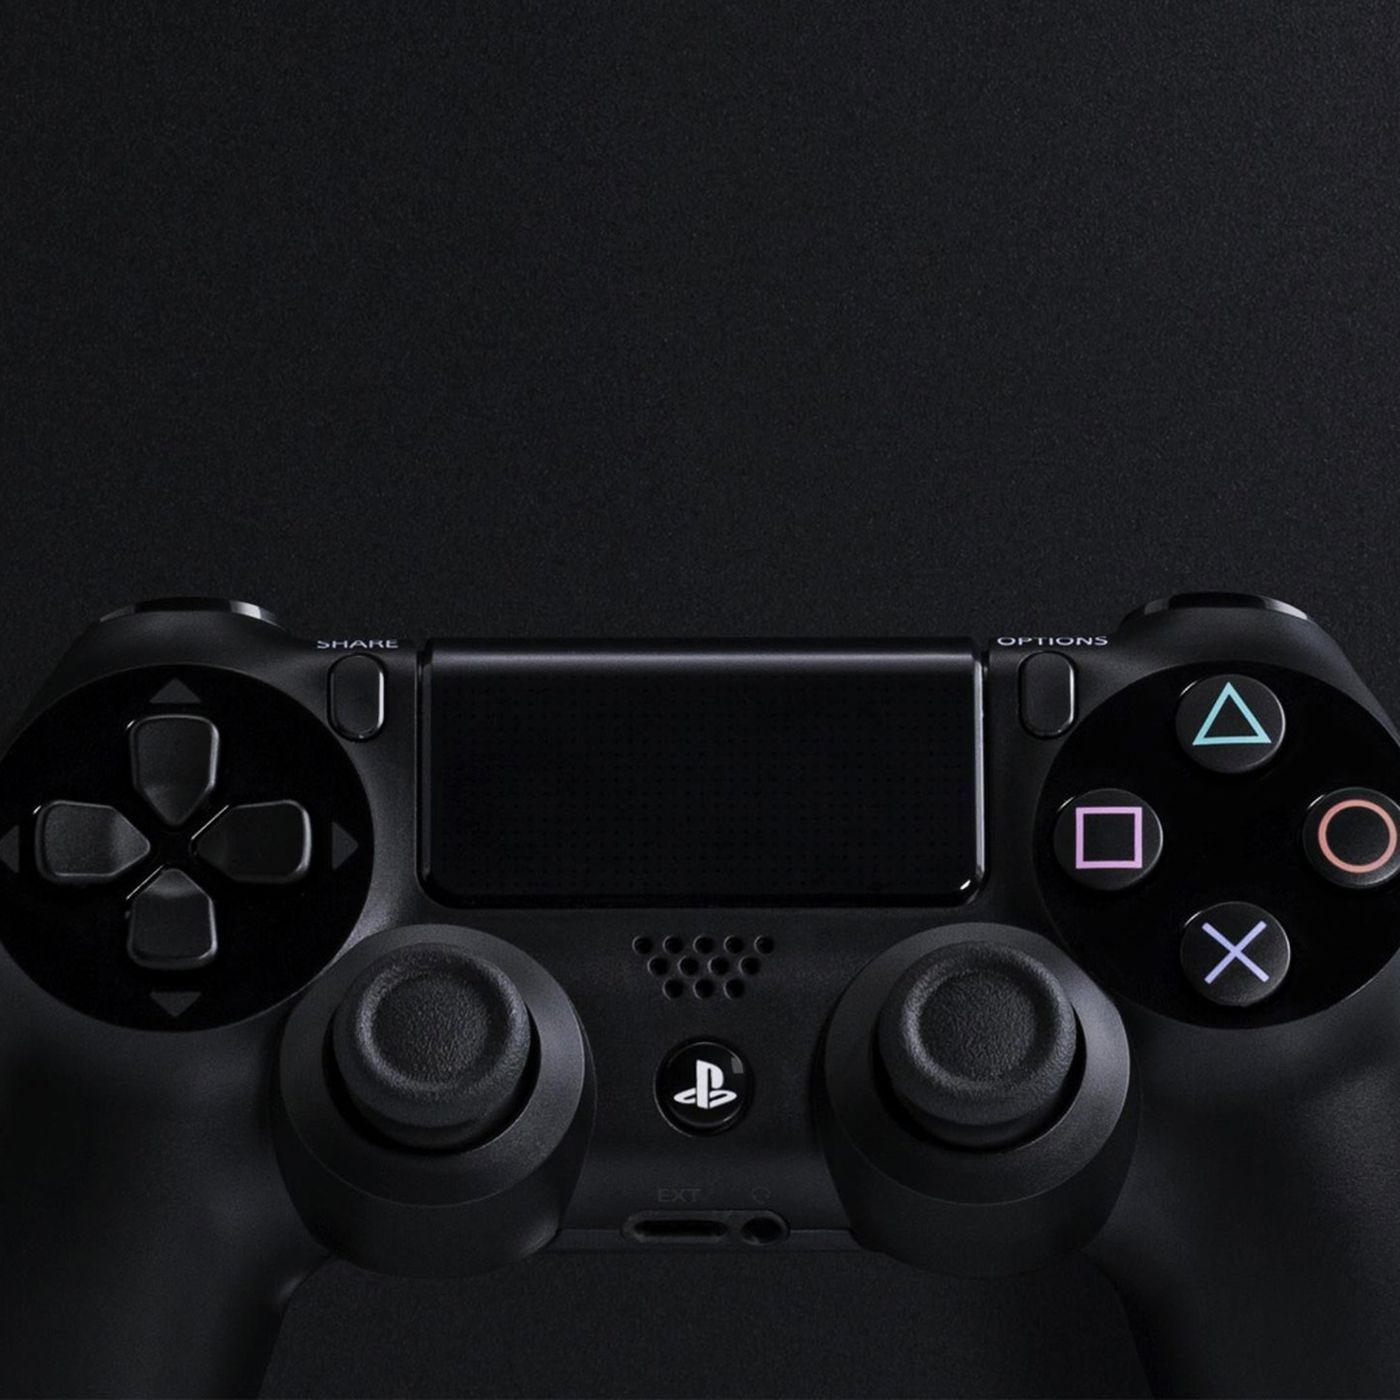 Playstation 4 Black Friday 2015 Deals Best Prices On Console Bundles And Big Games Update Polygon